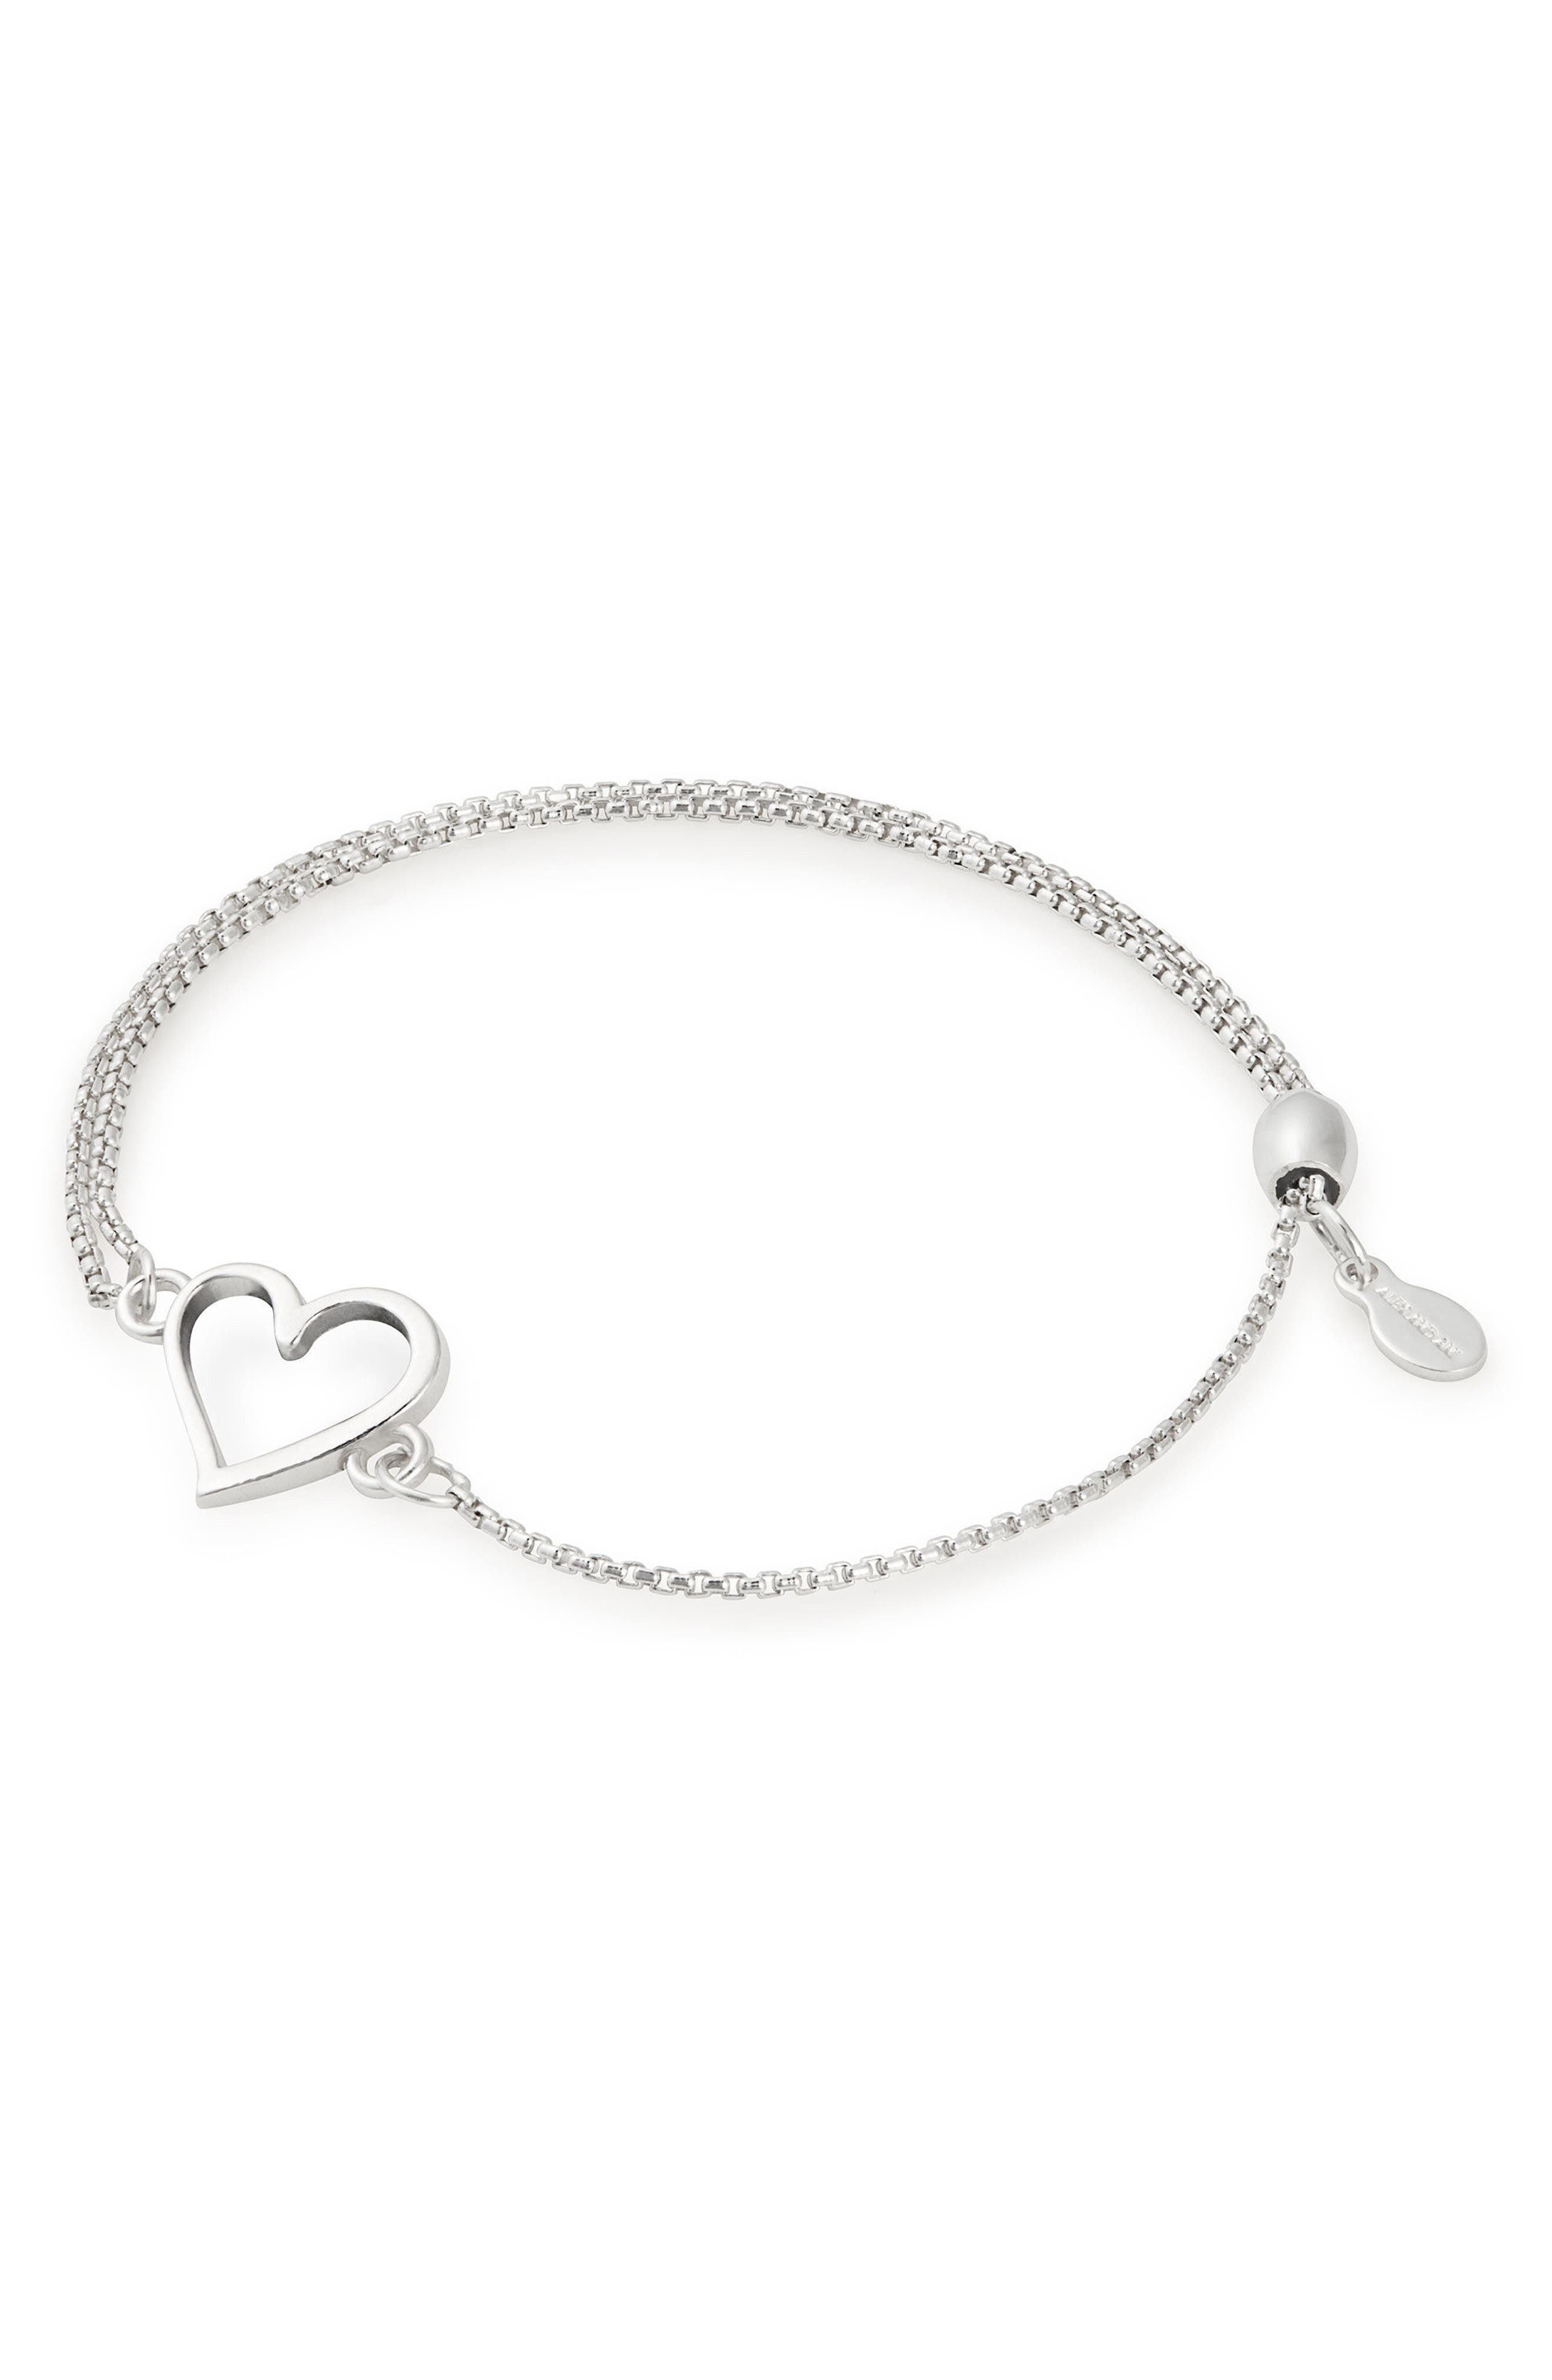 Heart Pull Chain Bracelet,                         Main,                         color, SILVER